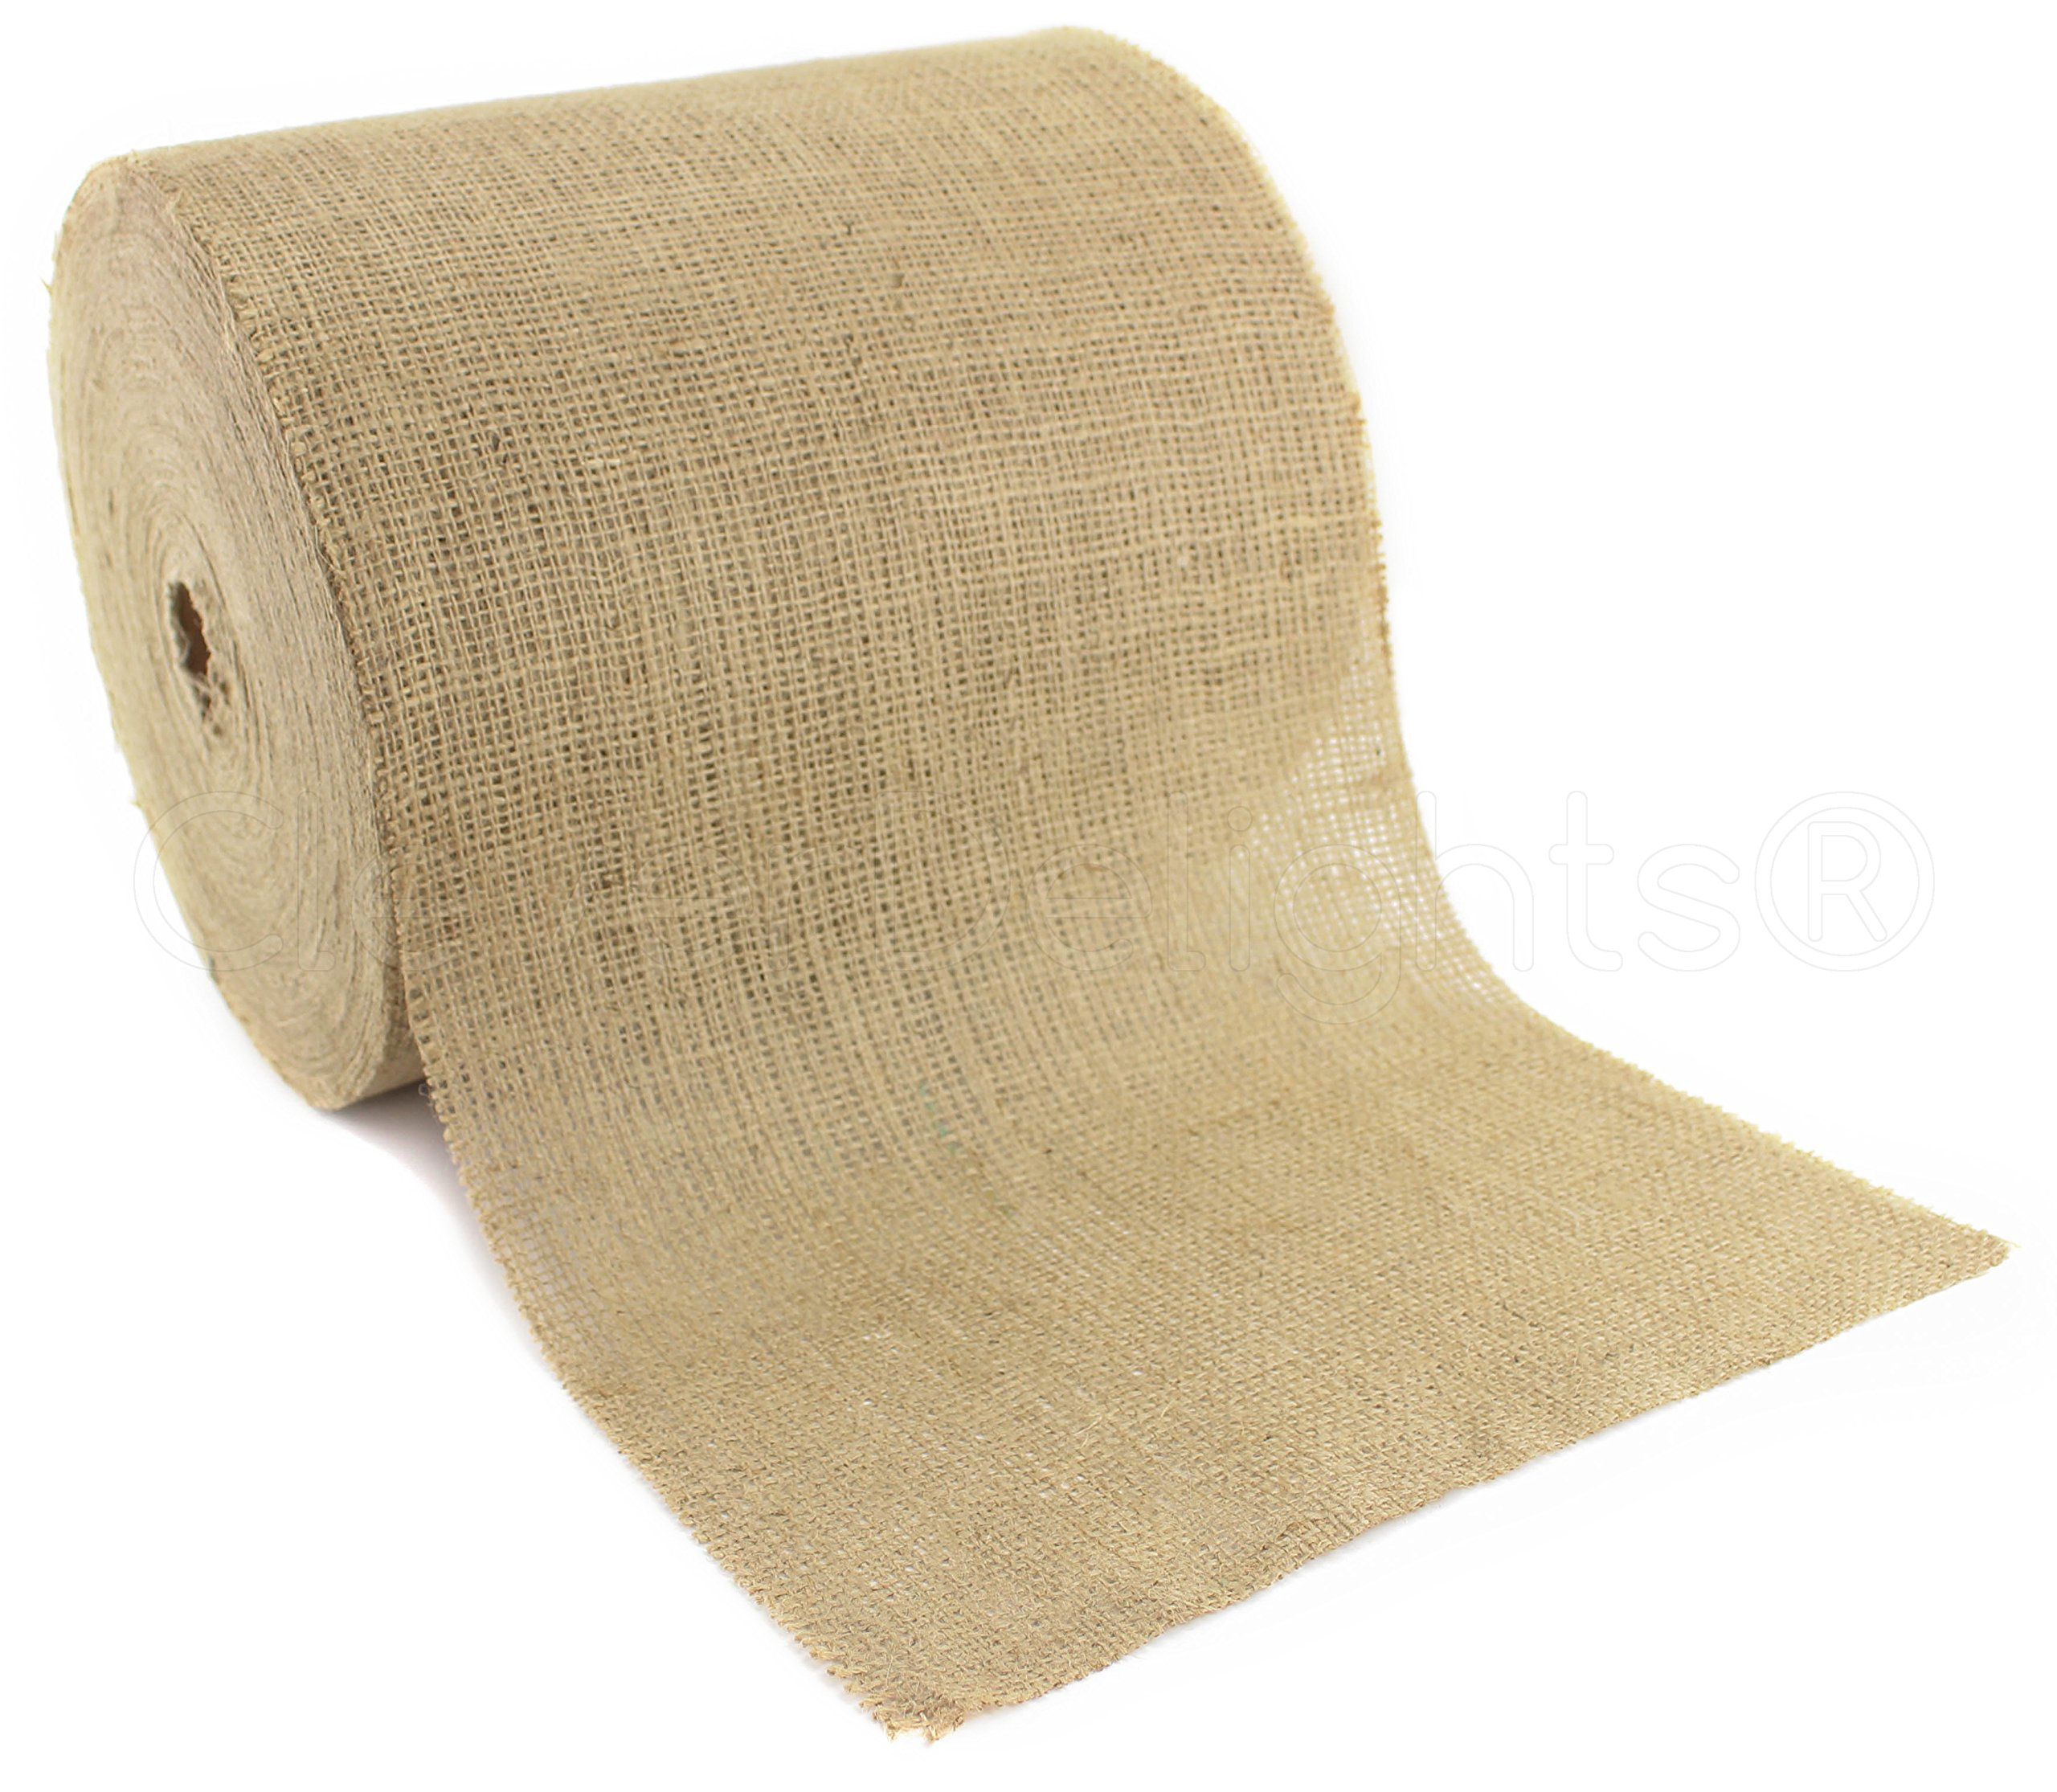 CleverDelights 12'' Natural Burlap Roll - 100 Yards - Eco-Friendly Jute Burlap Fabric - 12 Inch by CleverDelights (Image #1)